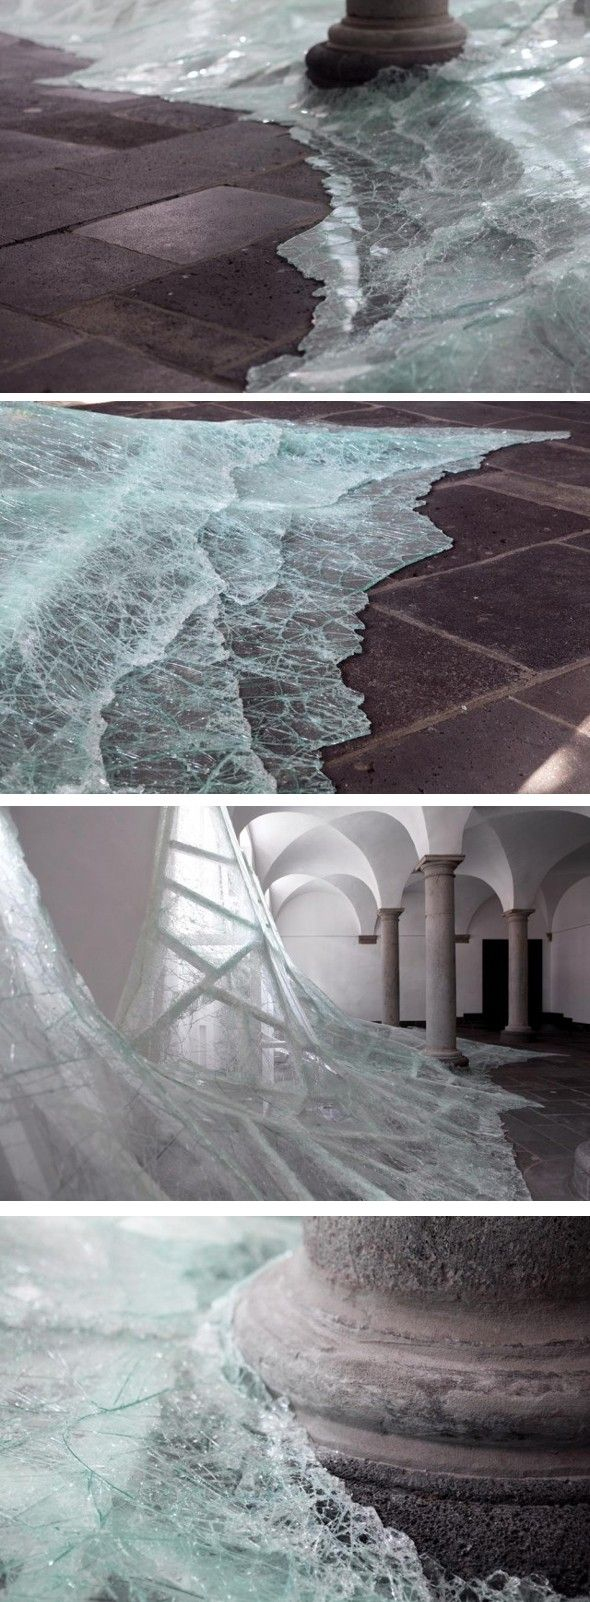 Aérial is a new on-site installation by artist Baptiste Debombourg in a beautiful Abbey called Brauweiler Pulheim near Cologne in Germany.  Debombourg used many layers of glass, wood, nails and white paint. It tries to mimic a flood of water rushing into a room or the grip of the ice on a location.